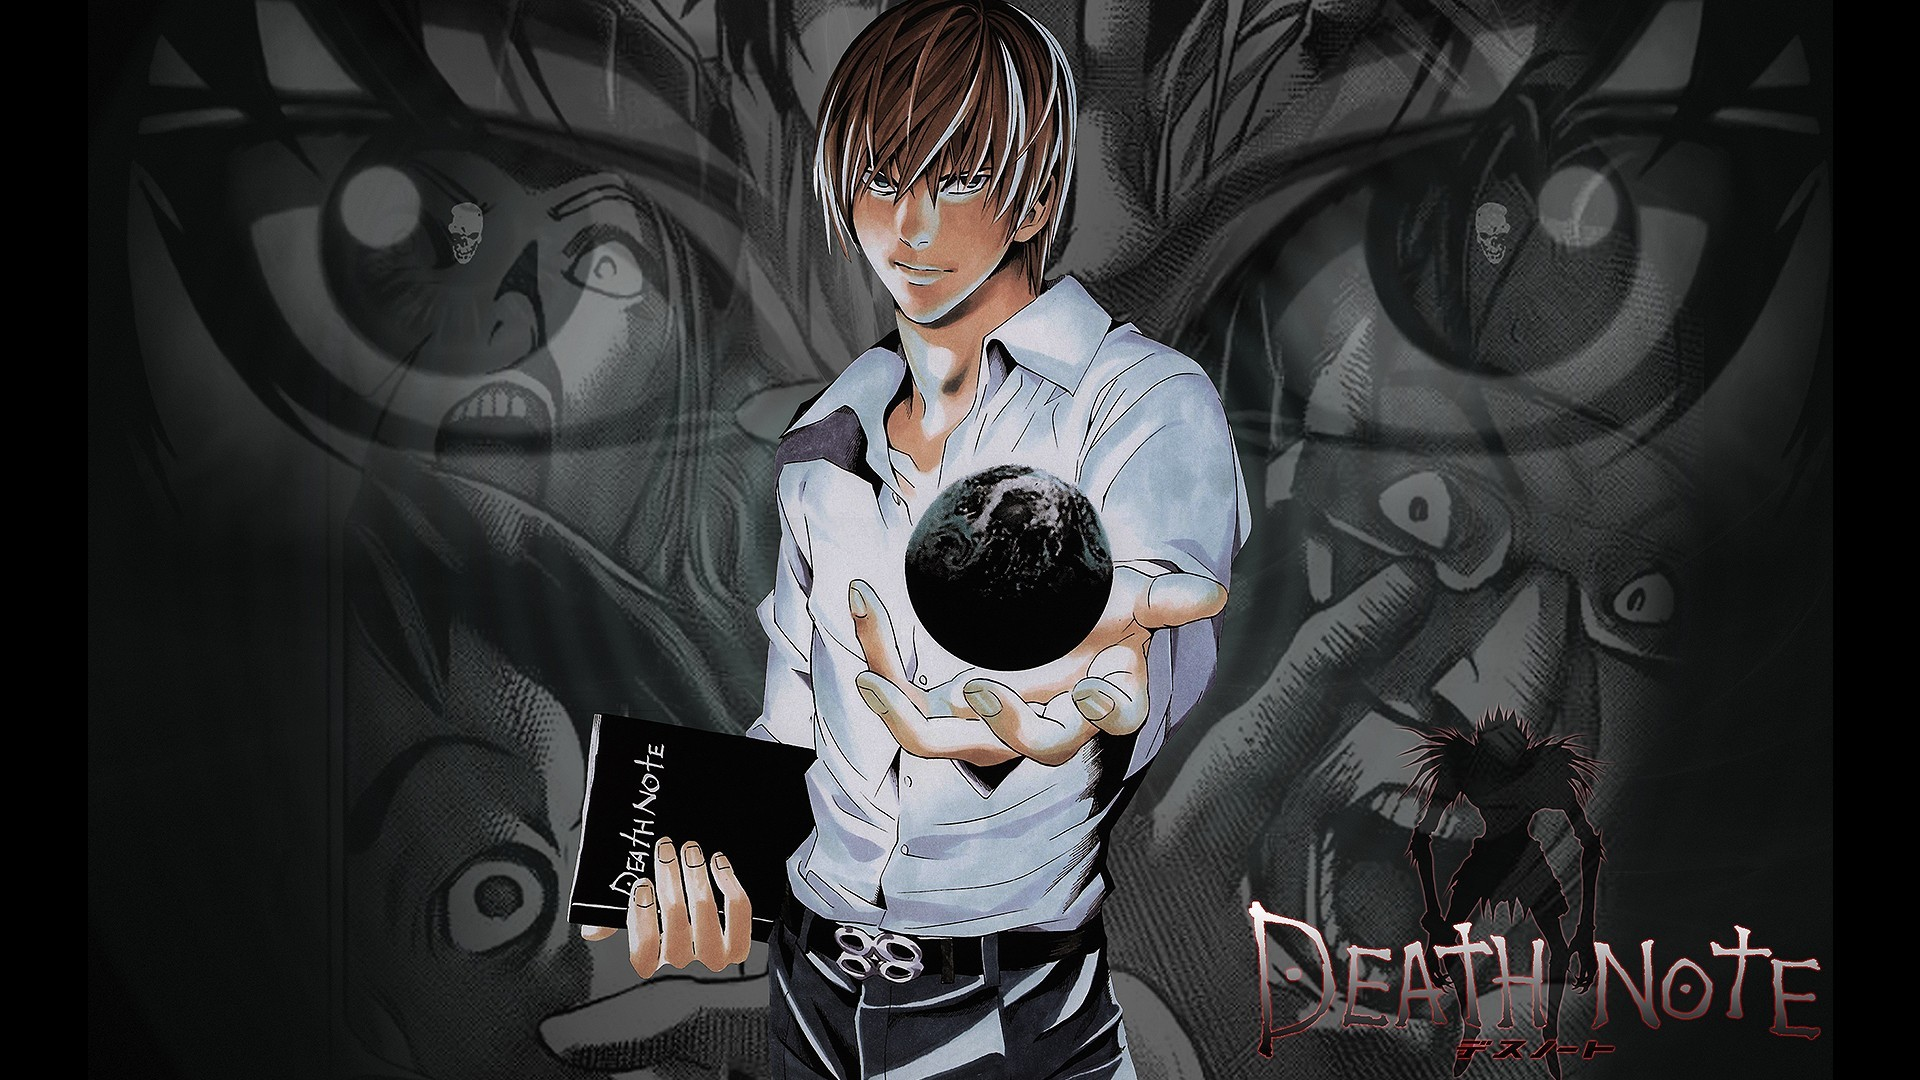 Death Note Hd Wallpapers 6 Free Hd Wallpaper - Animewp.com